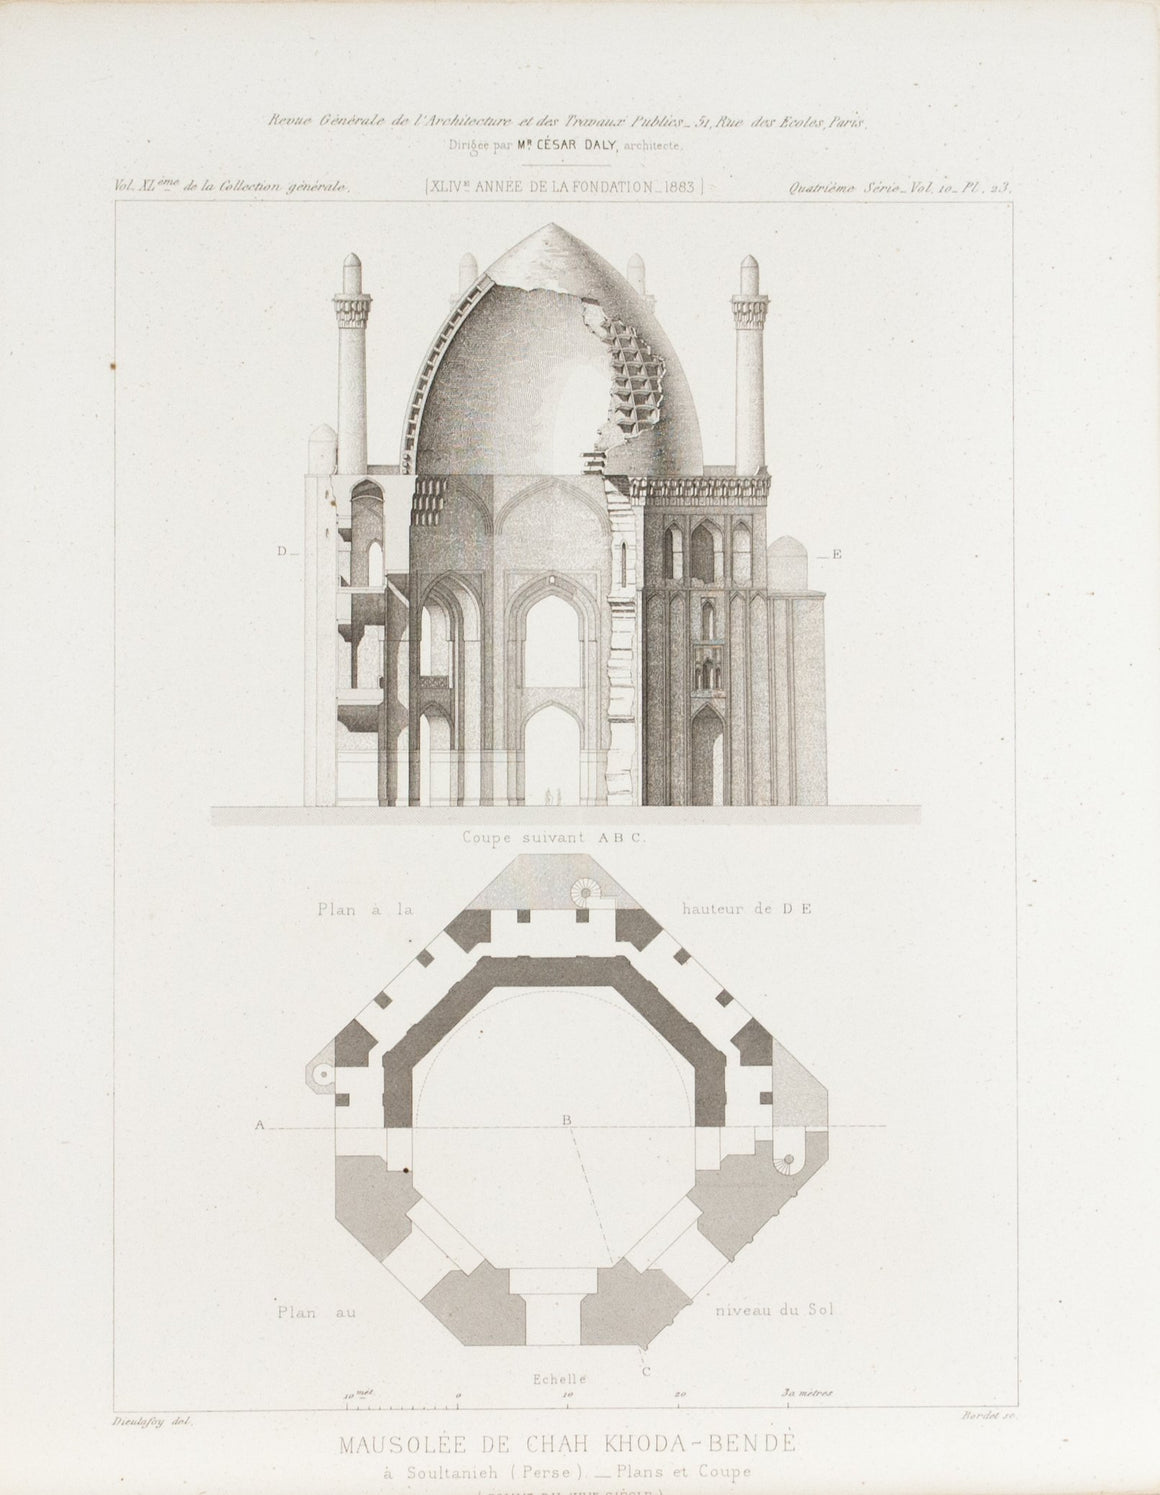 Dome Design Architectural Building Plans 1883 Architecture Print